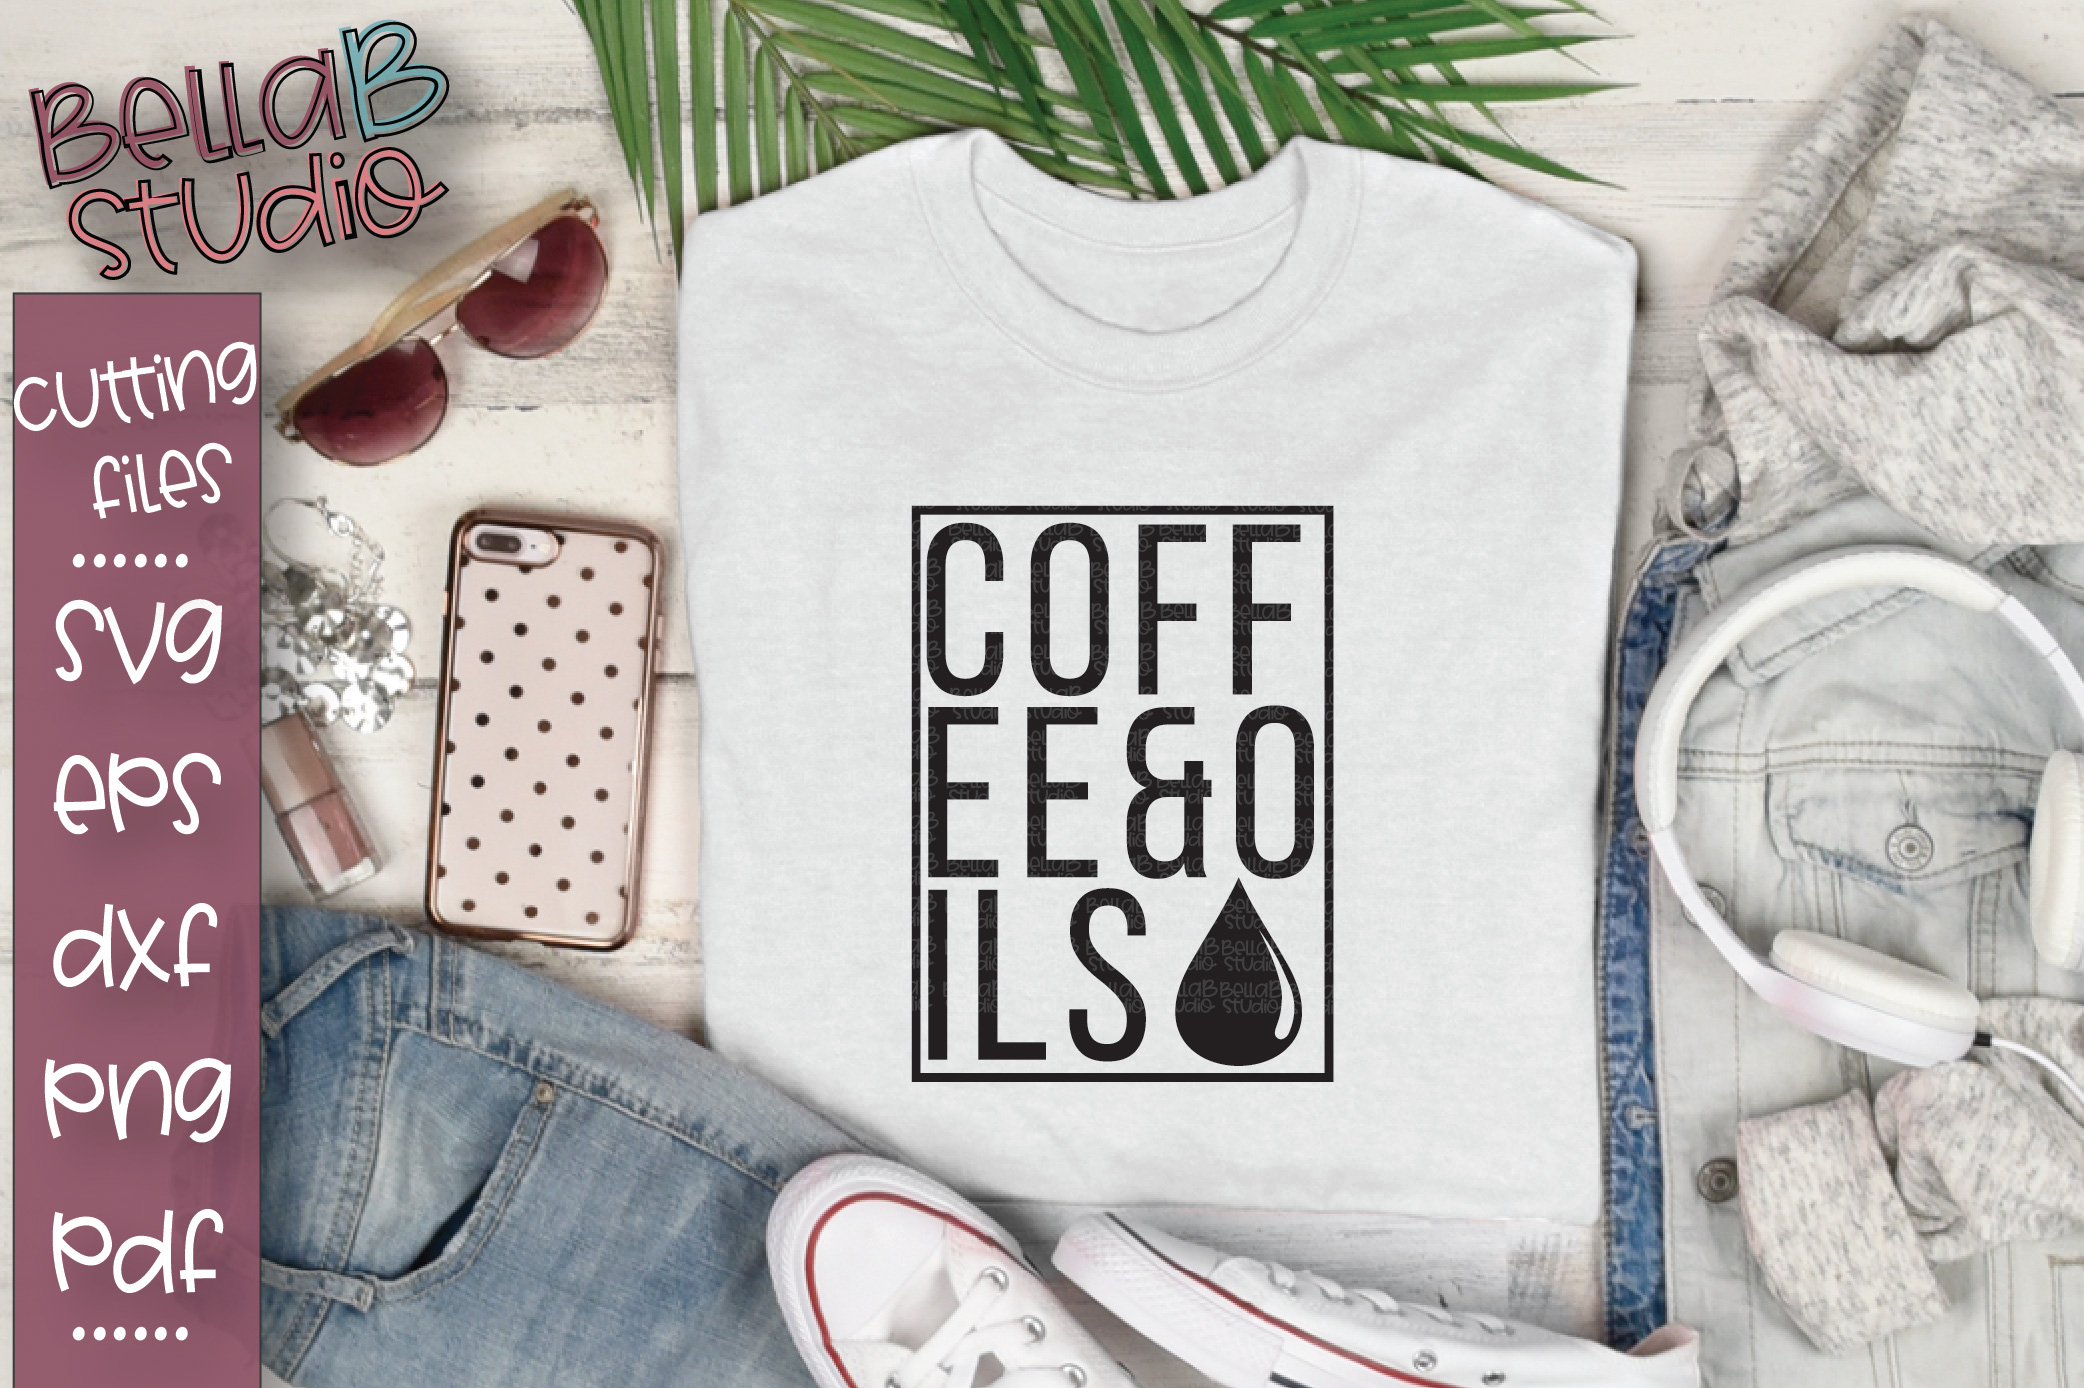 Essential Oils SVG, Coffee and Oils SVG example image 1